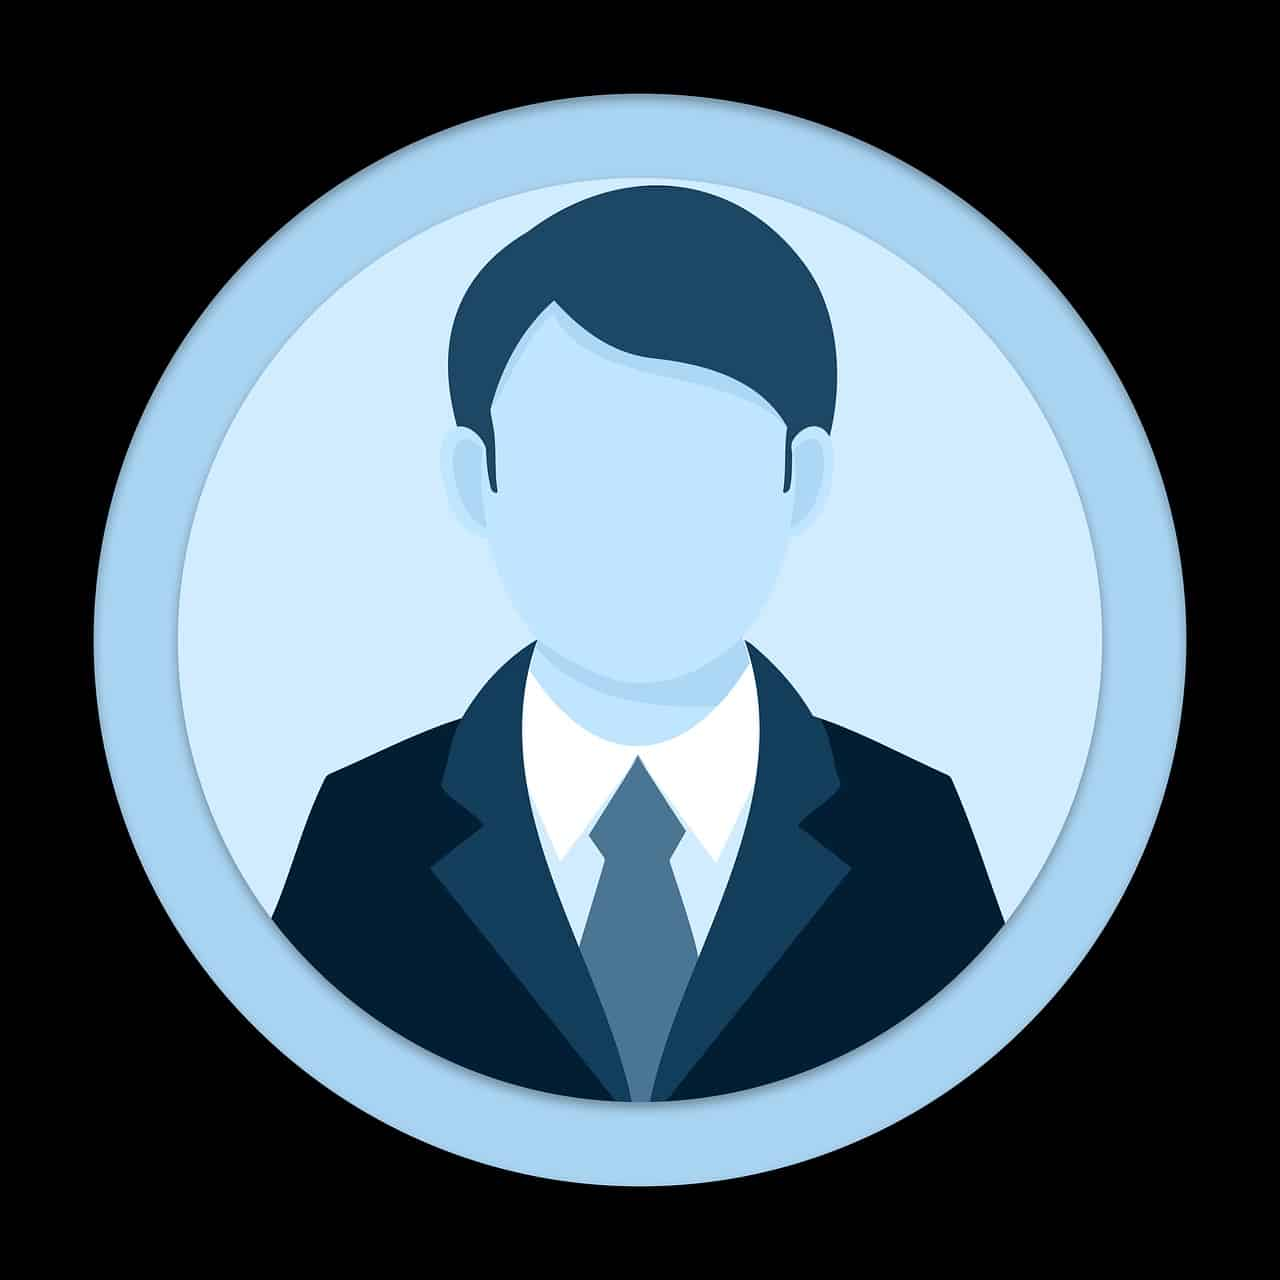 Icon of a Man Wearing a Suit